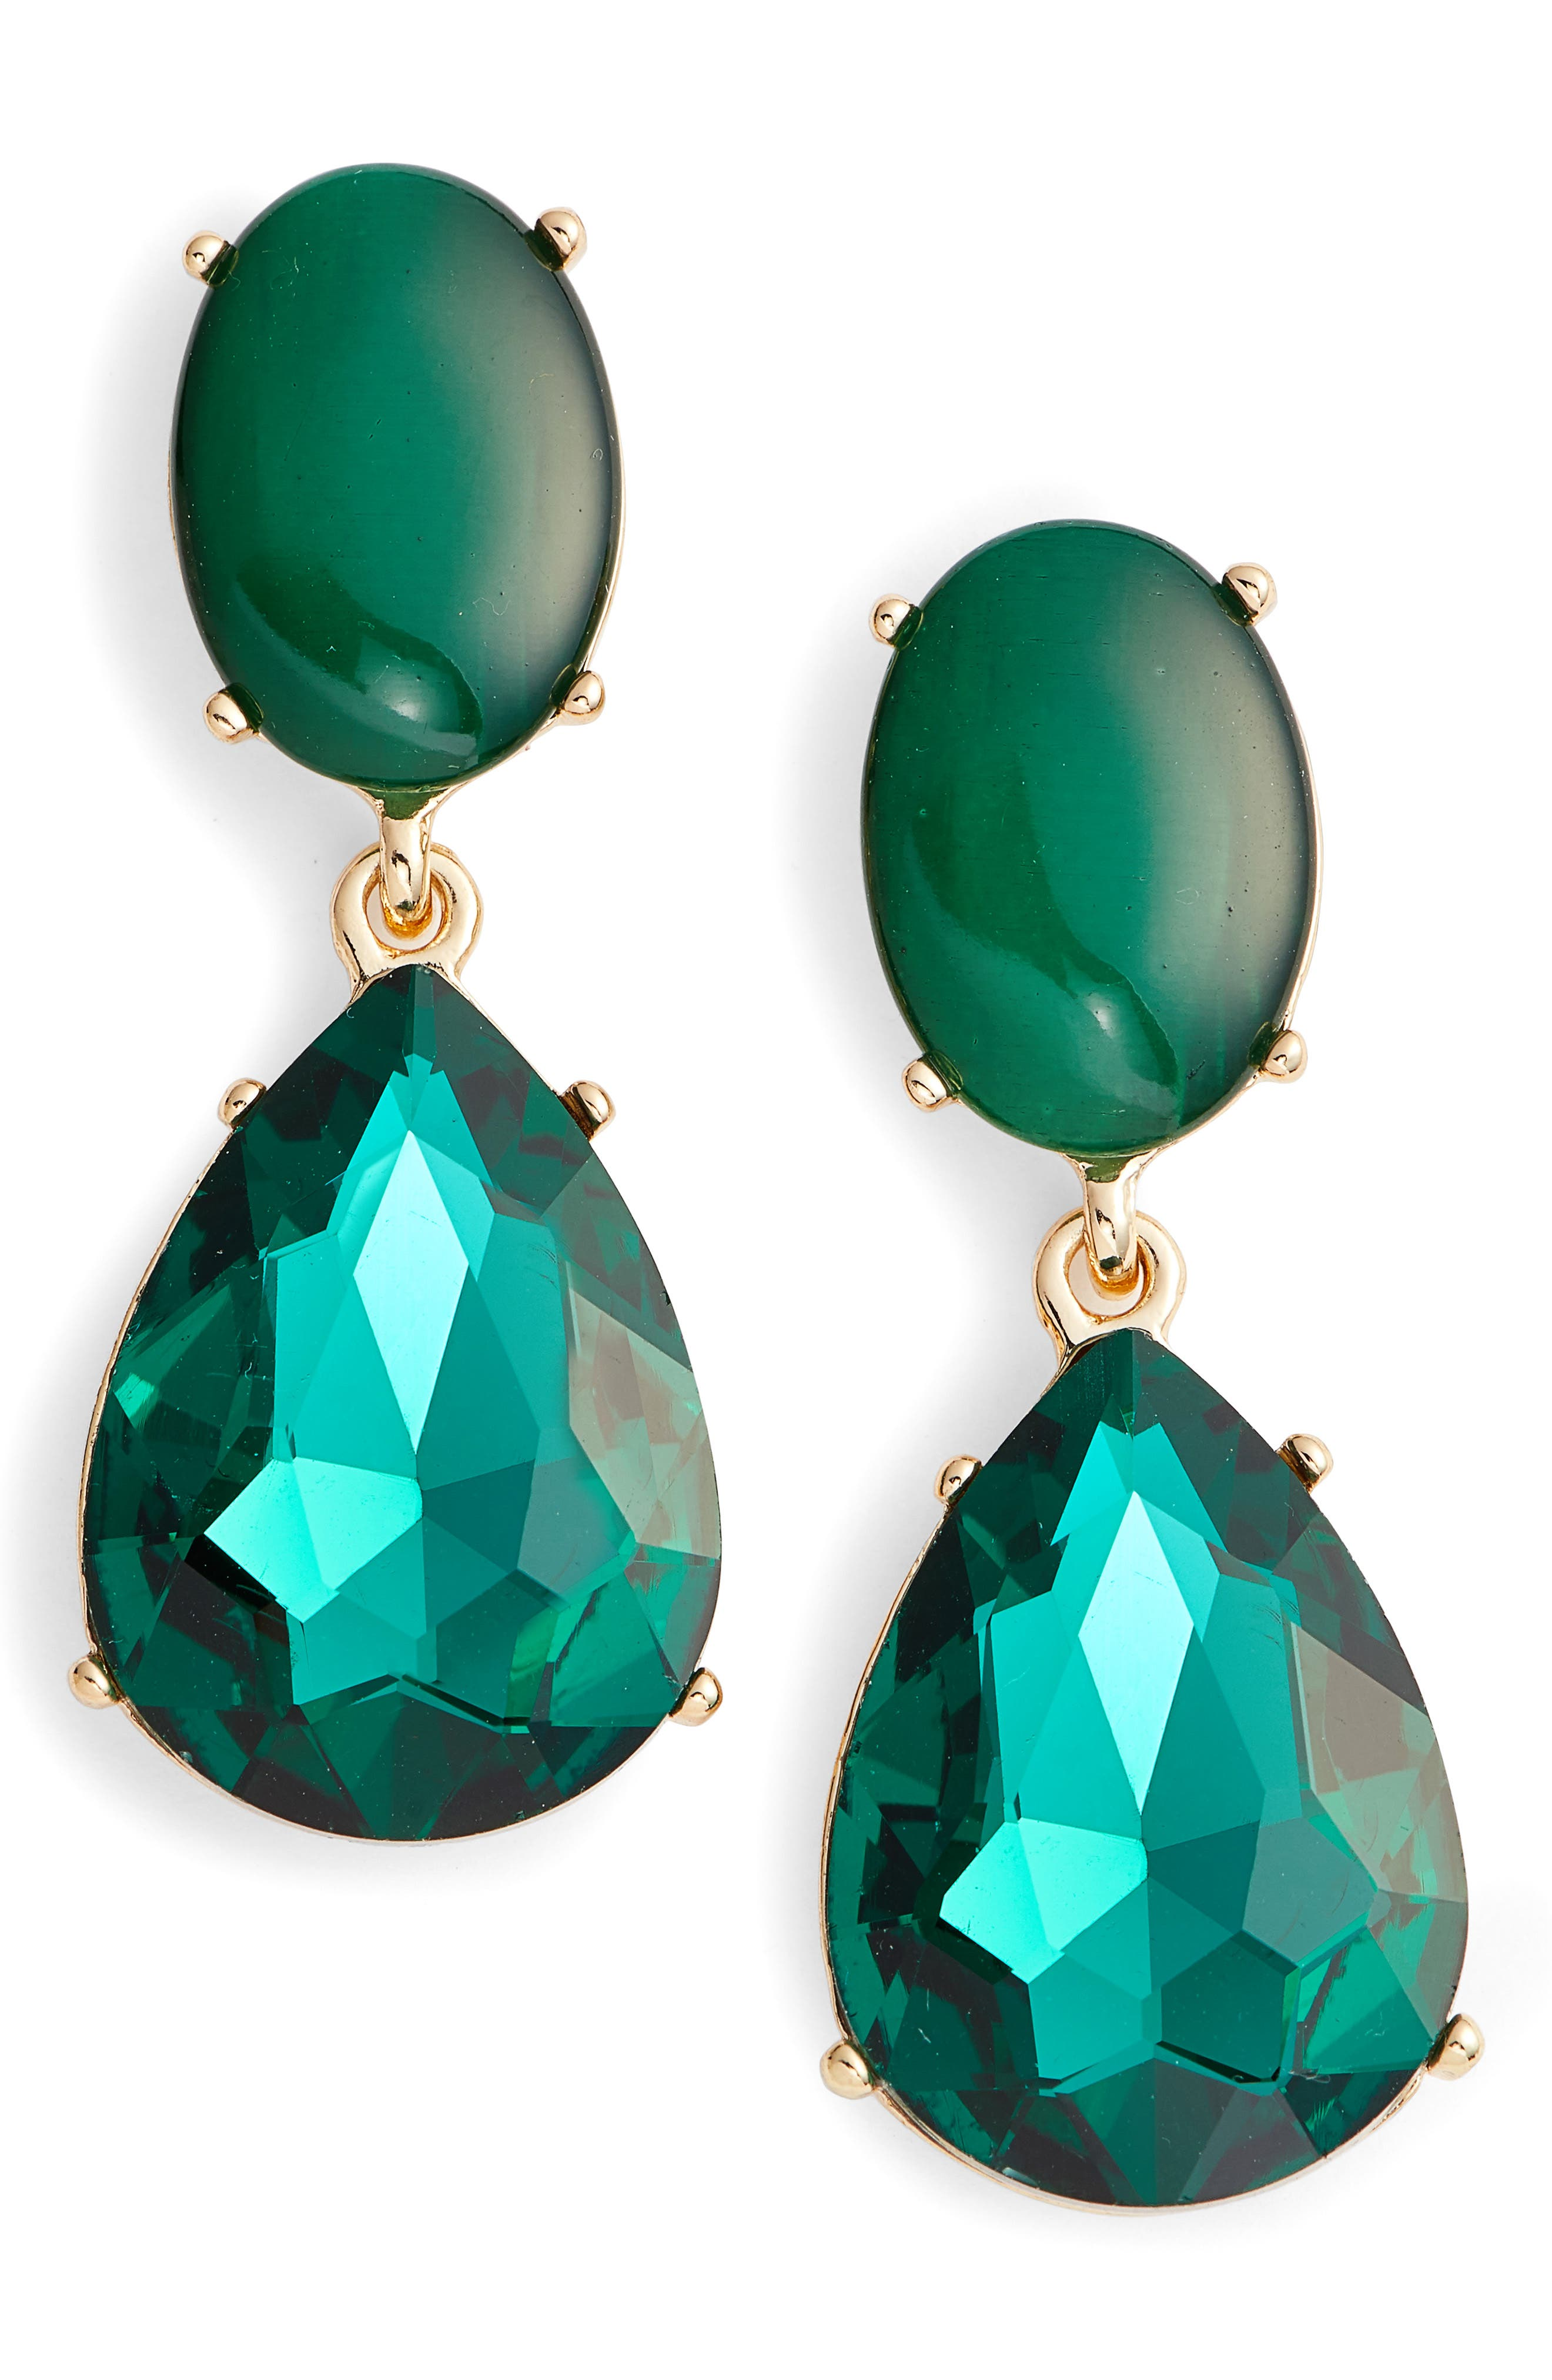 Gemstone Statement Double Drop Earrings,                             Main thumbnail 1, color,                             310